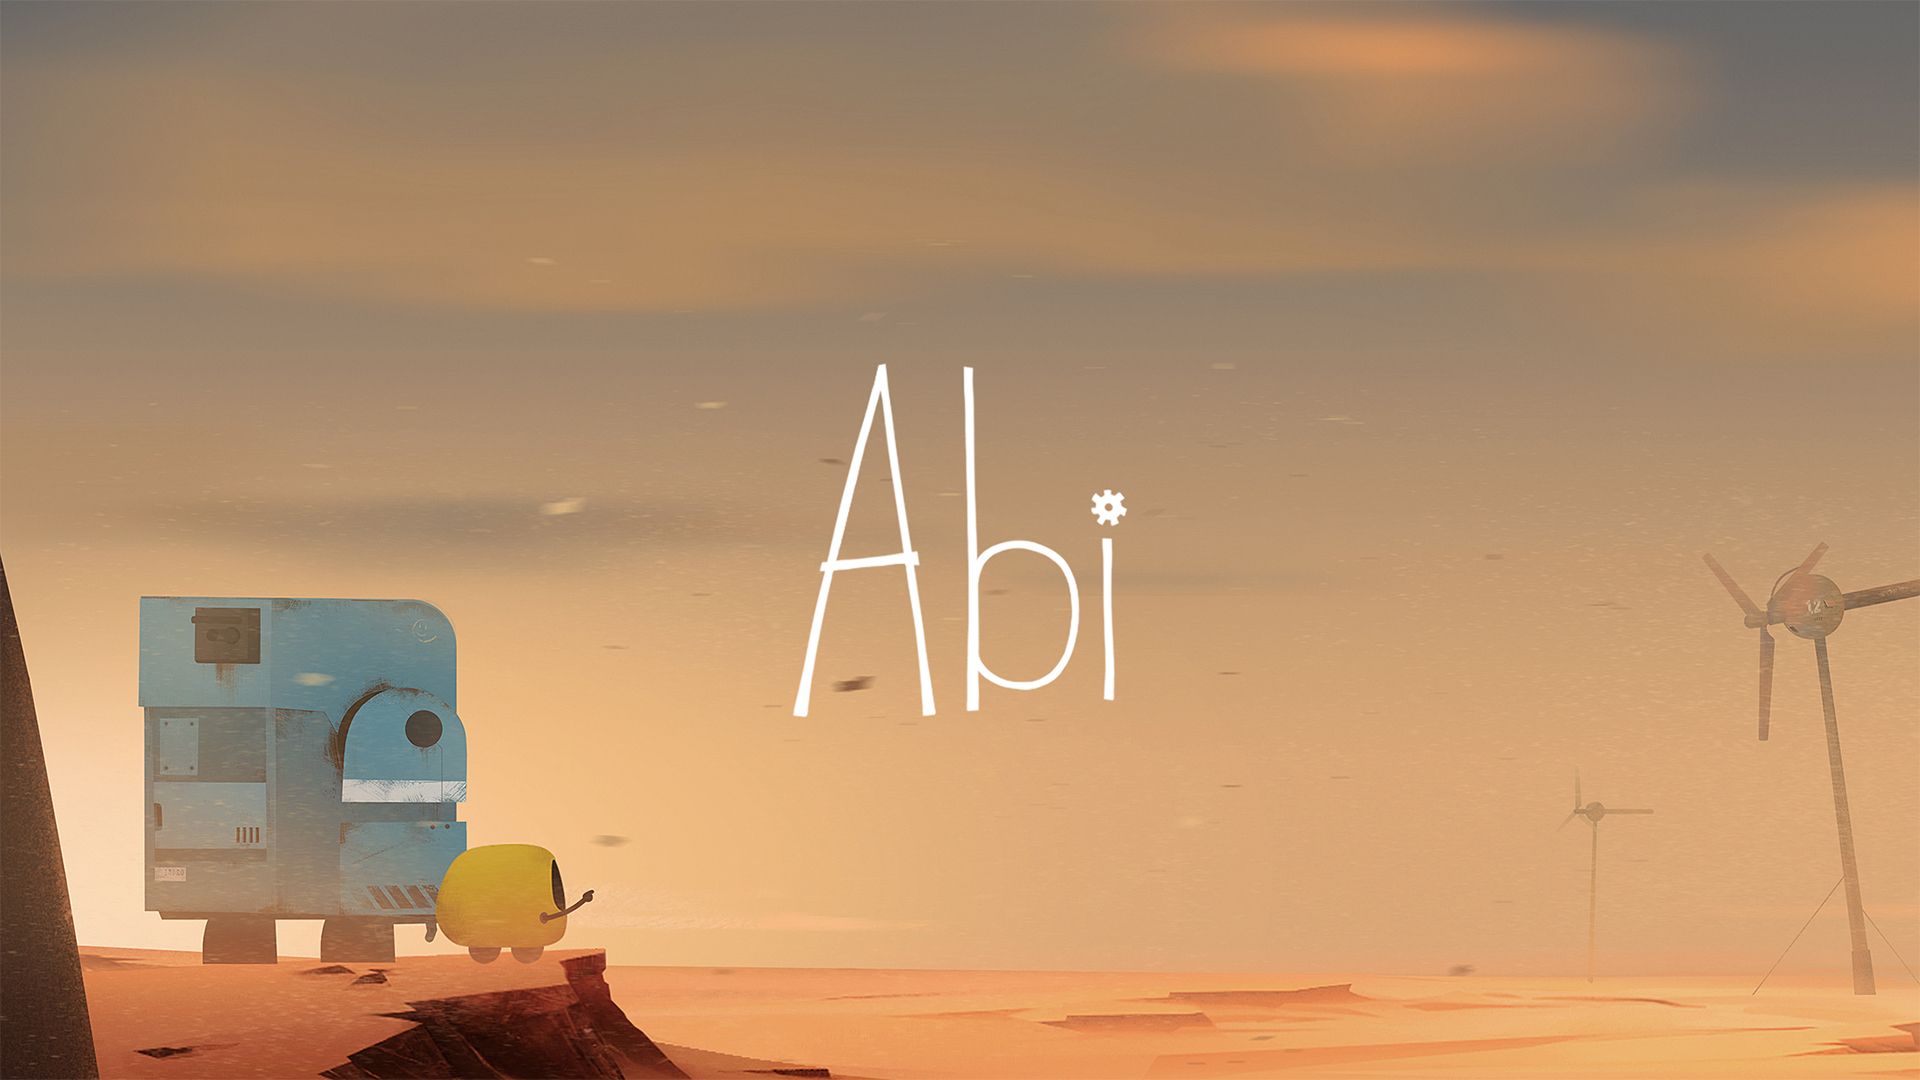 Abi: A Robot's Tale screenshot 11